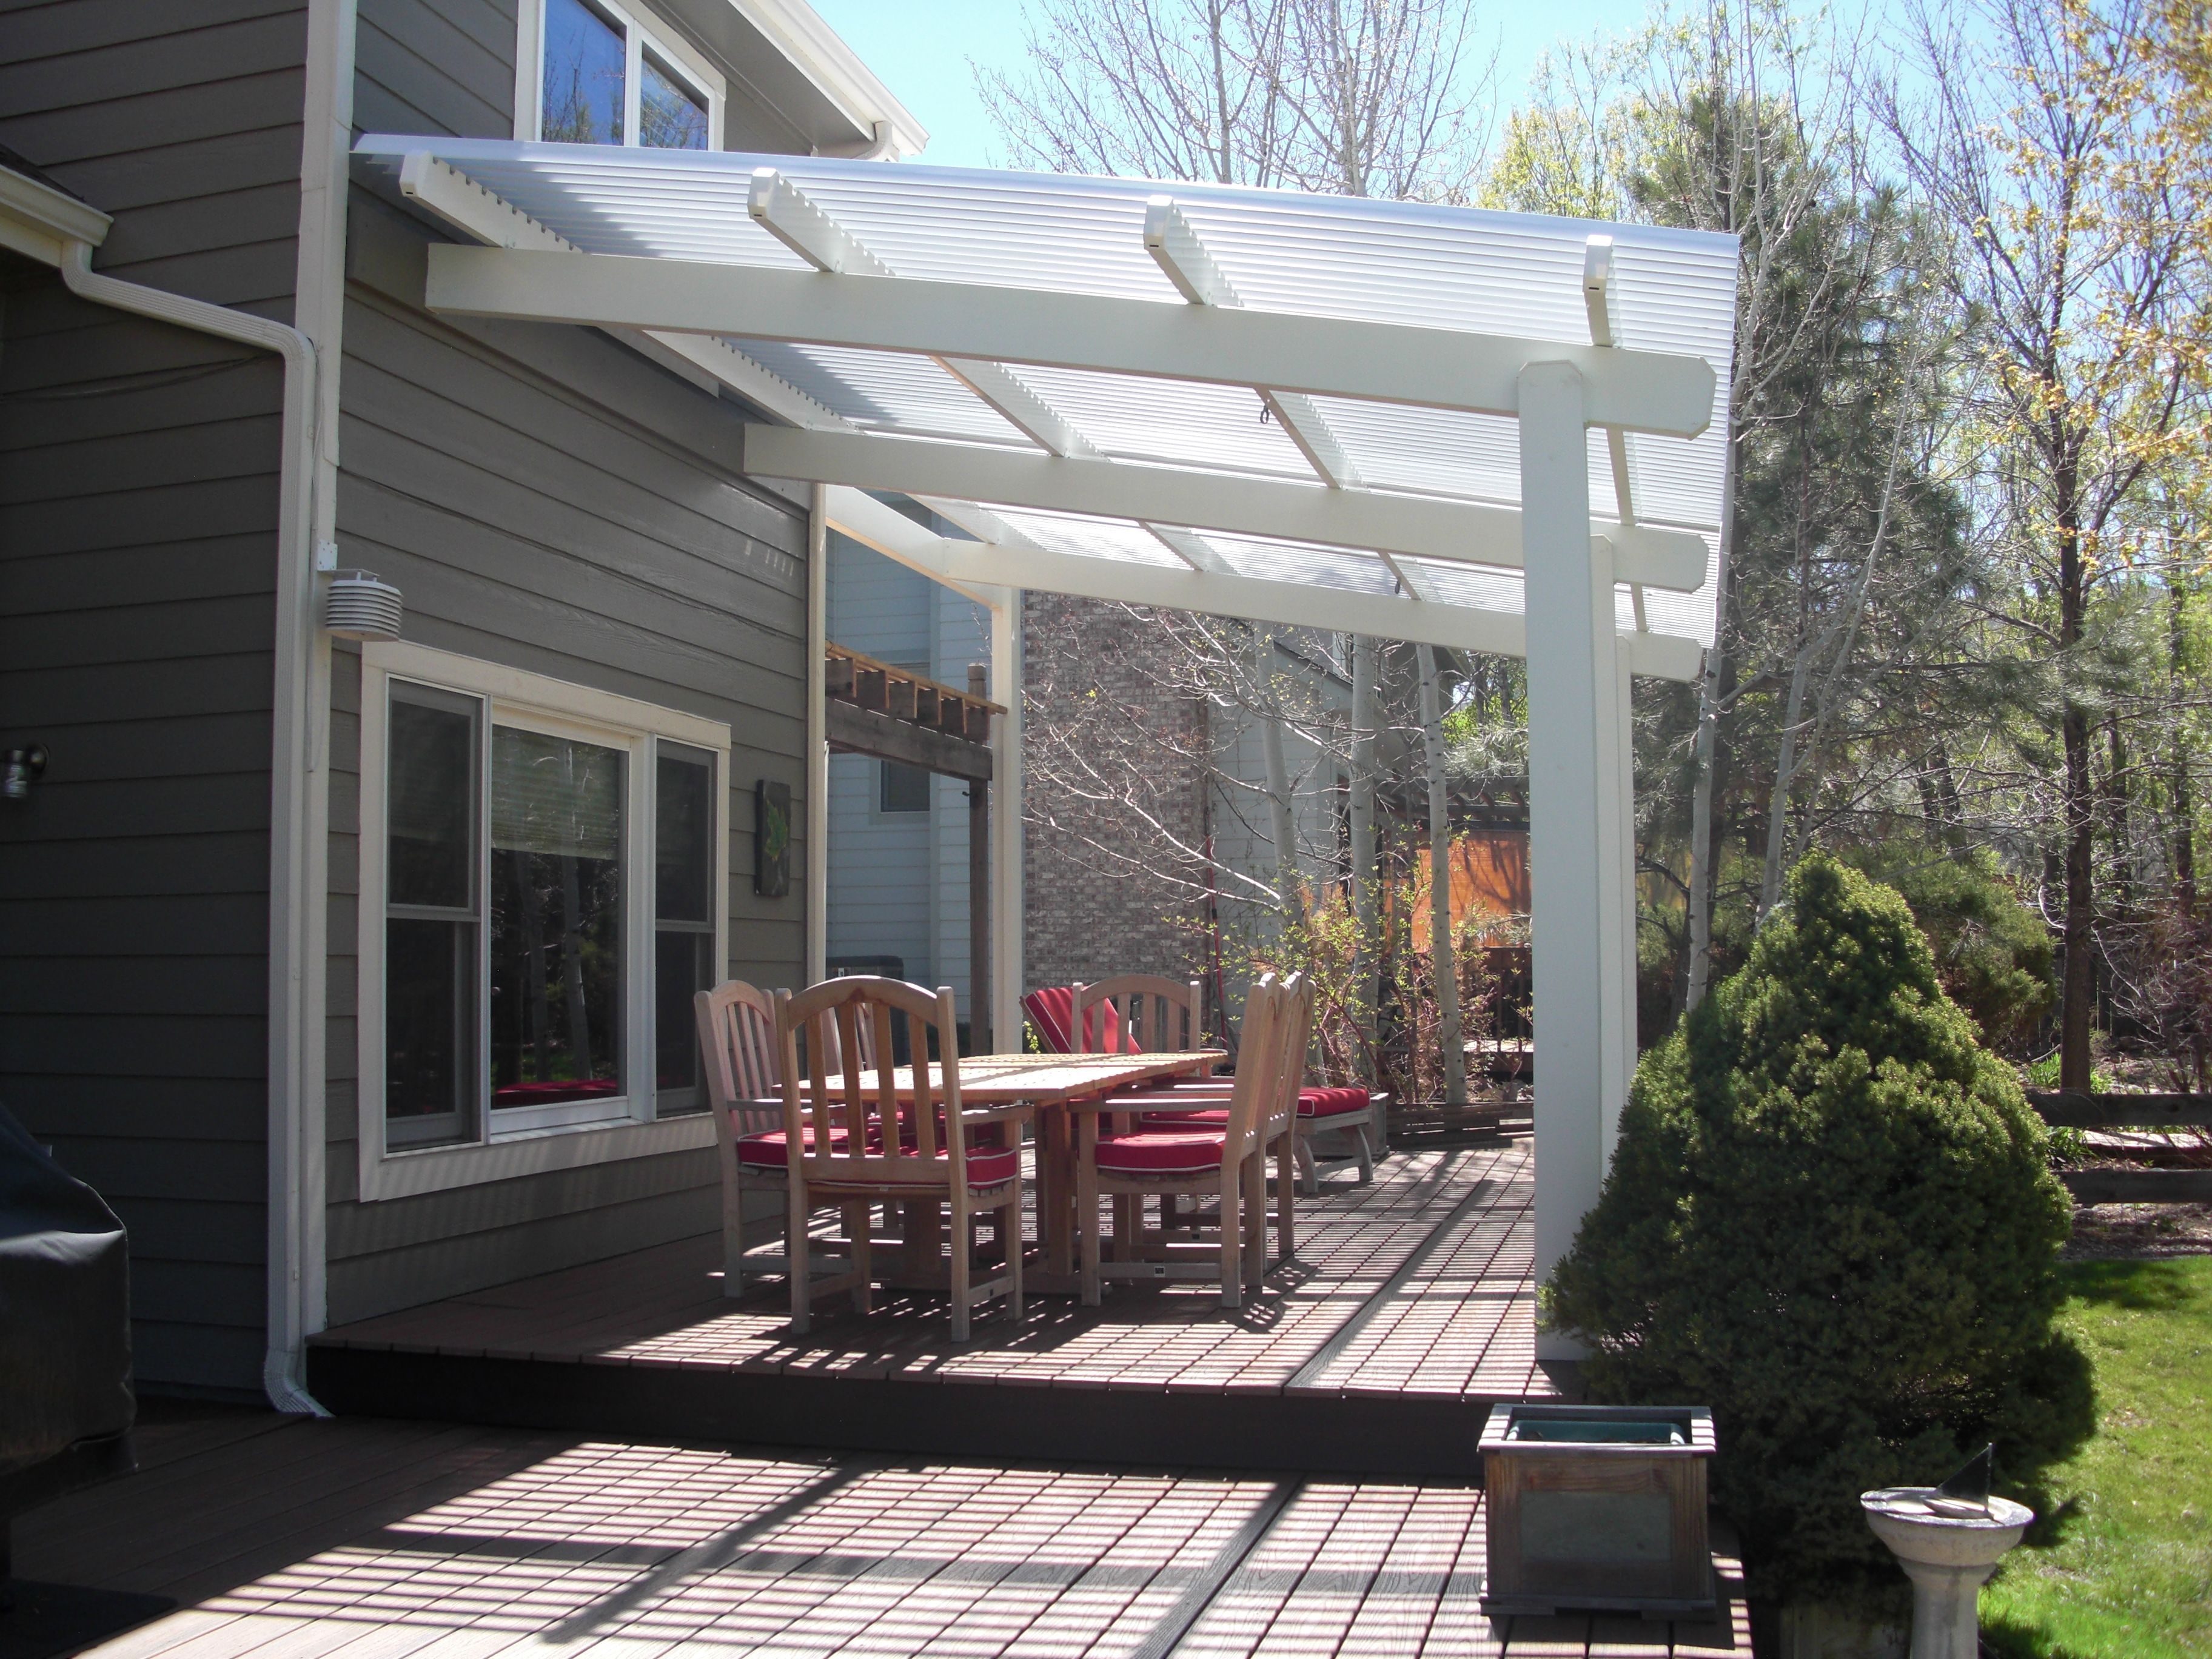 Adjustable Patio Cover - Opens and Closes | Pergola